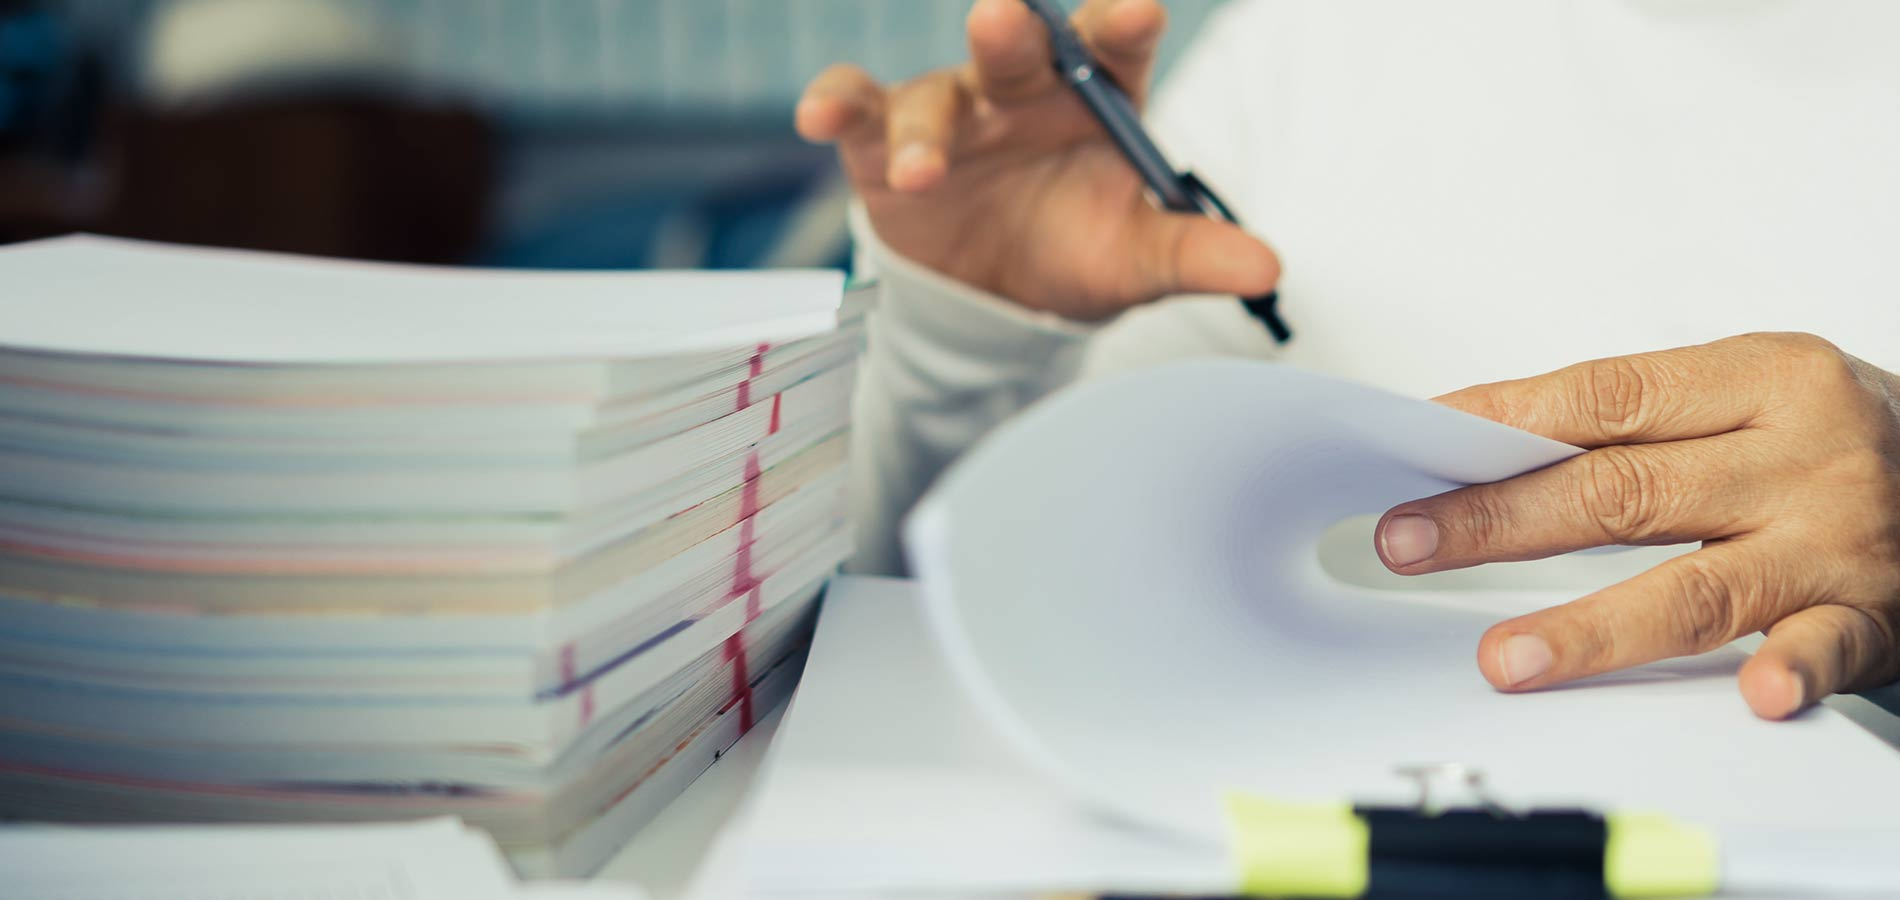 What qualifications are needed in Bookkeeping?